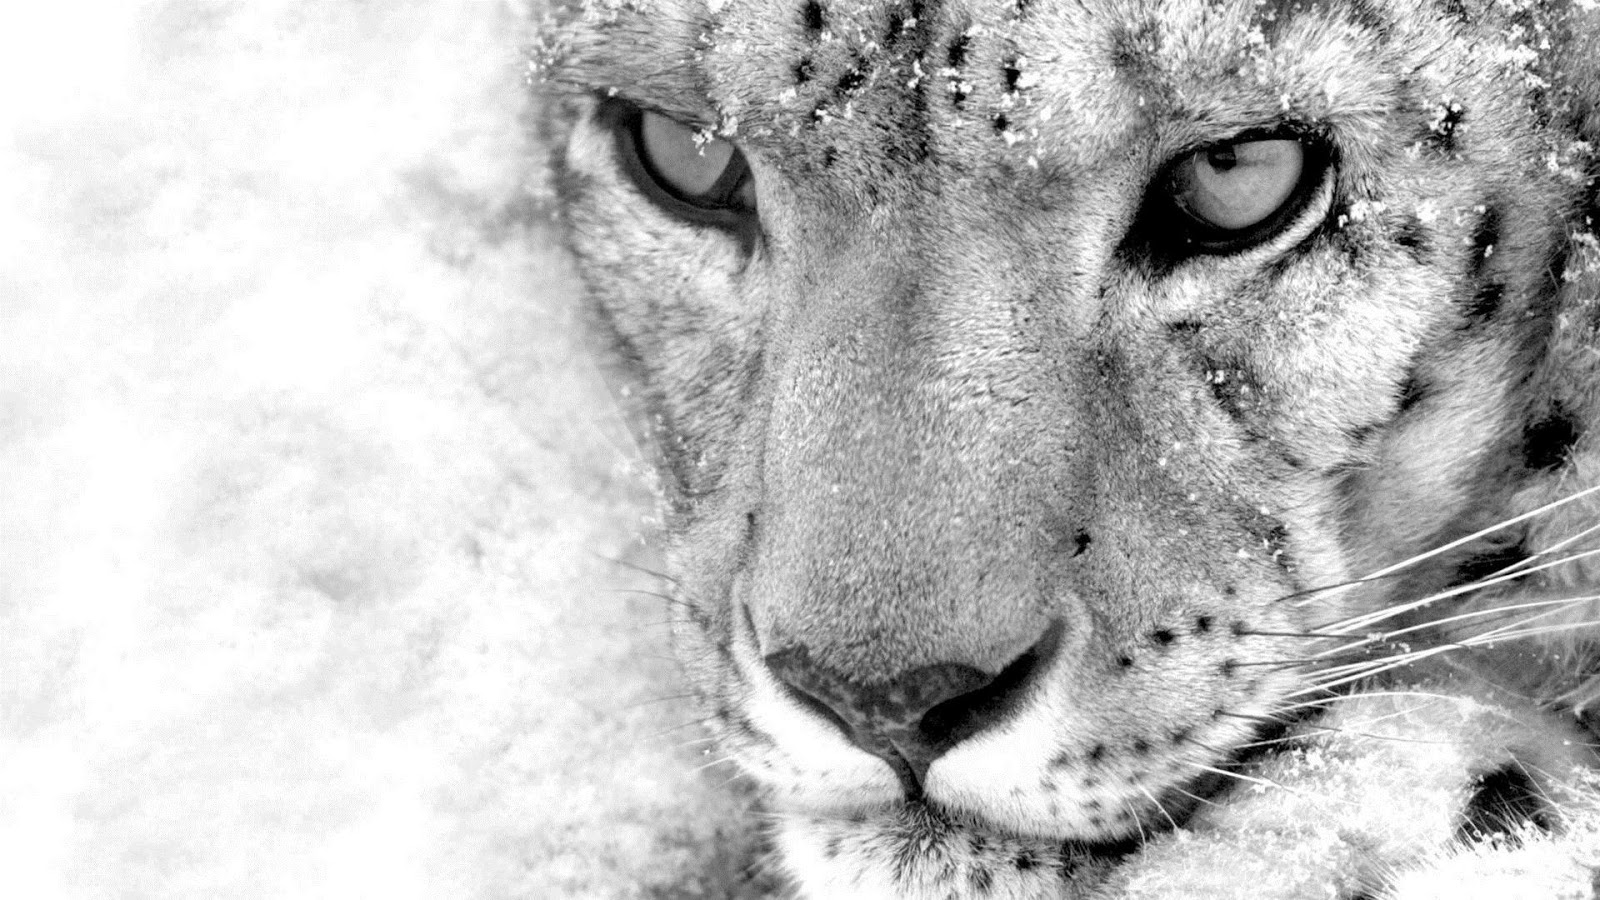 Snow Leopard Desktop Wallpaper Posted By Zoey Tremblay